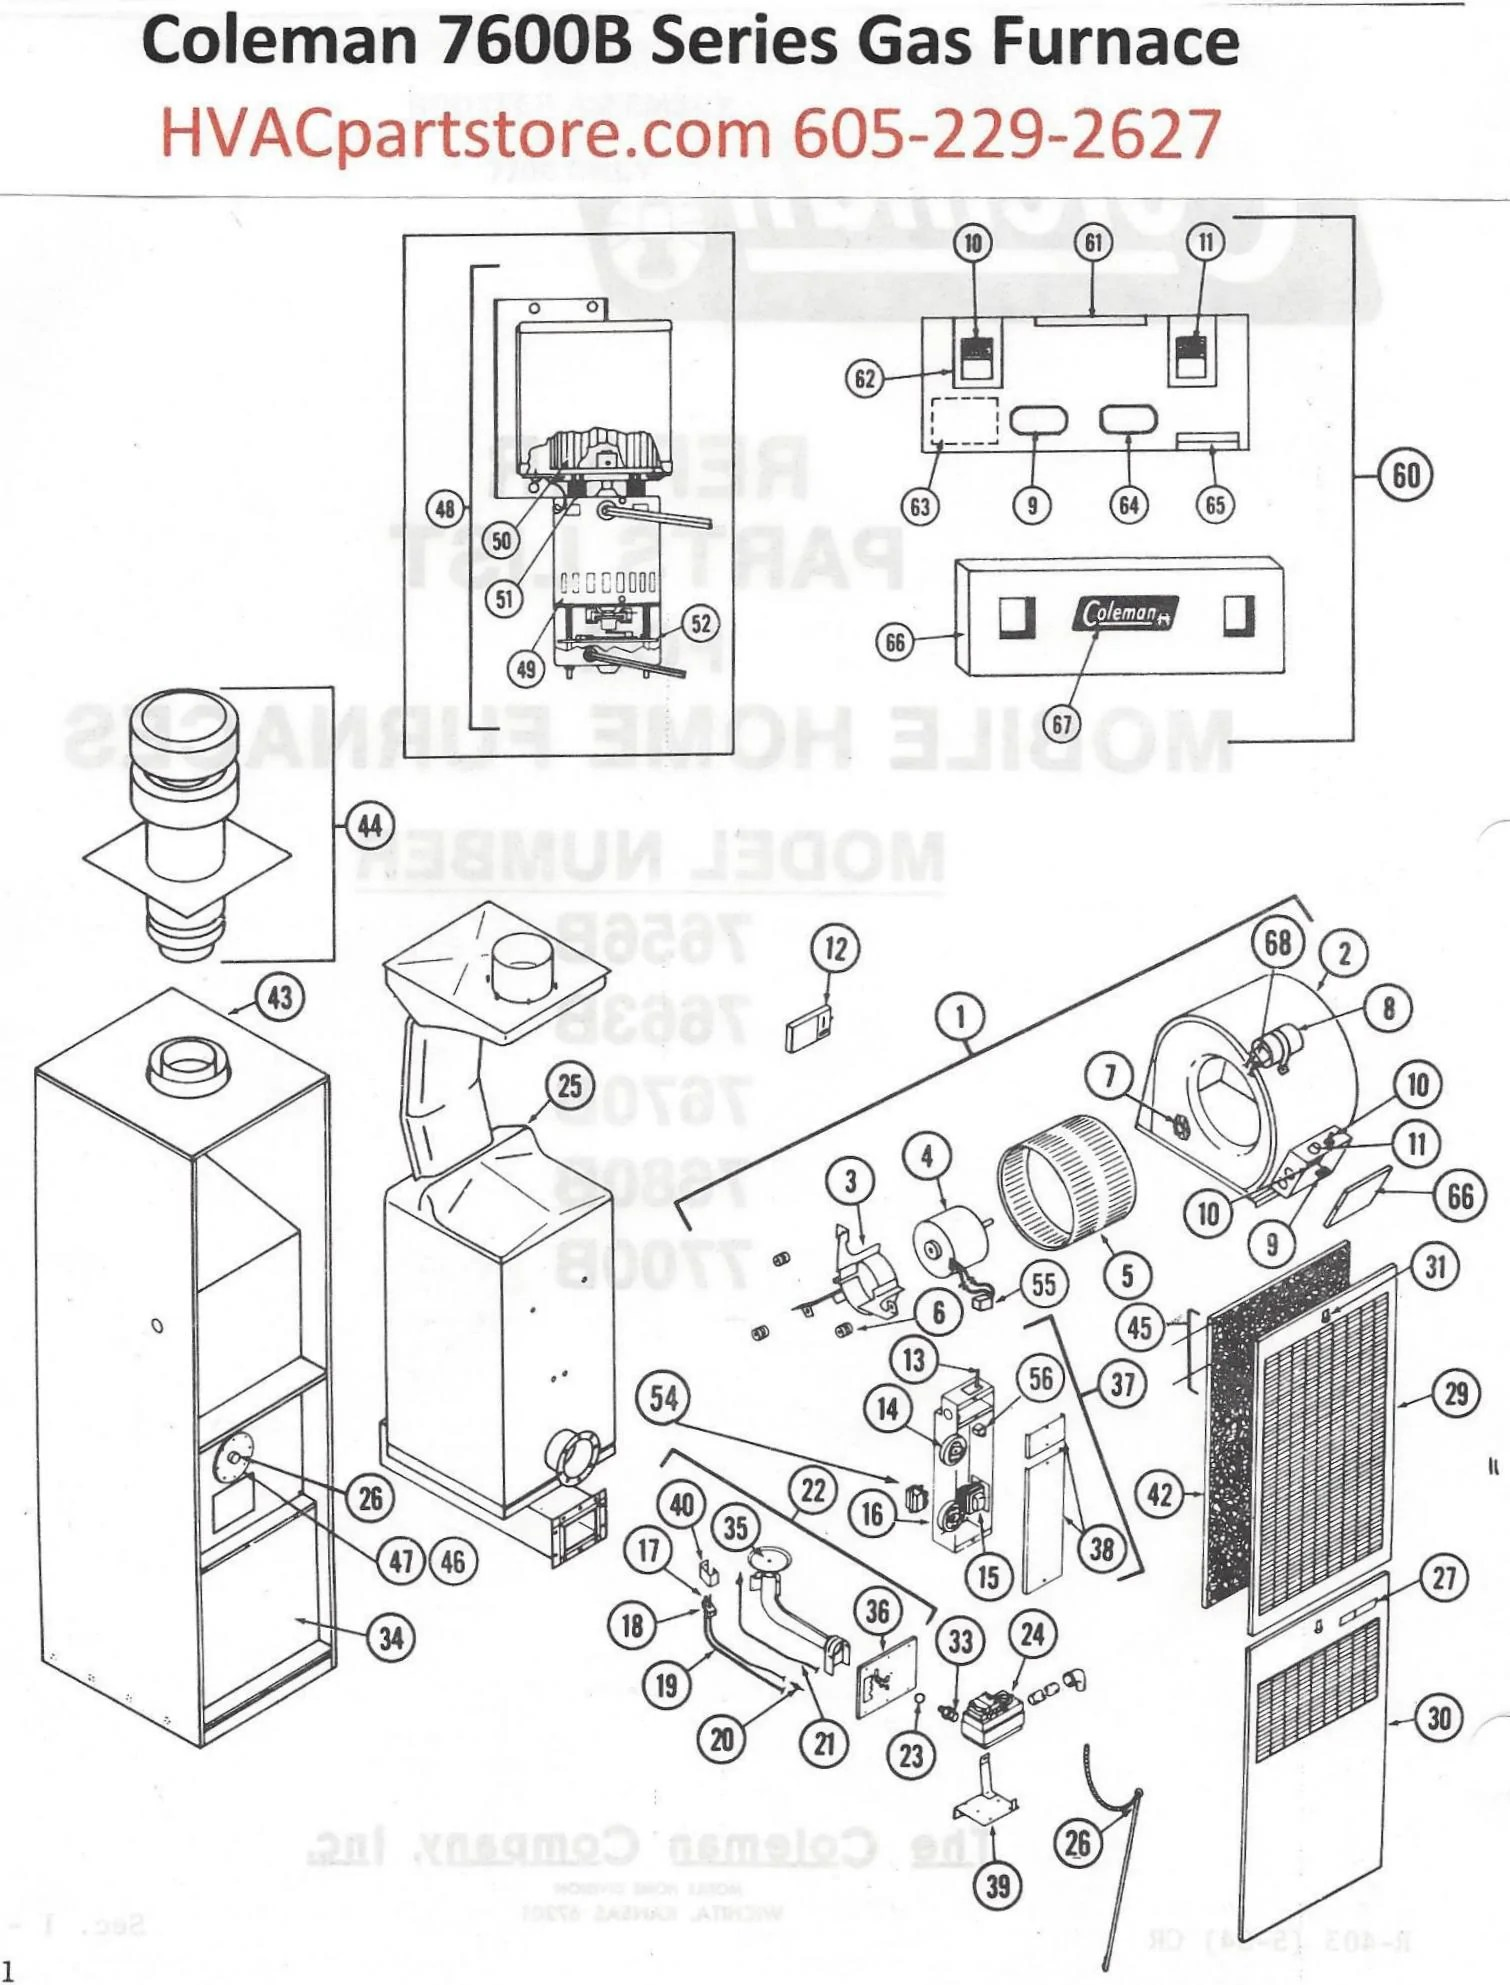 hight resolution of 7656b856 coleman gas furnace parts